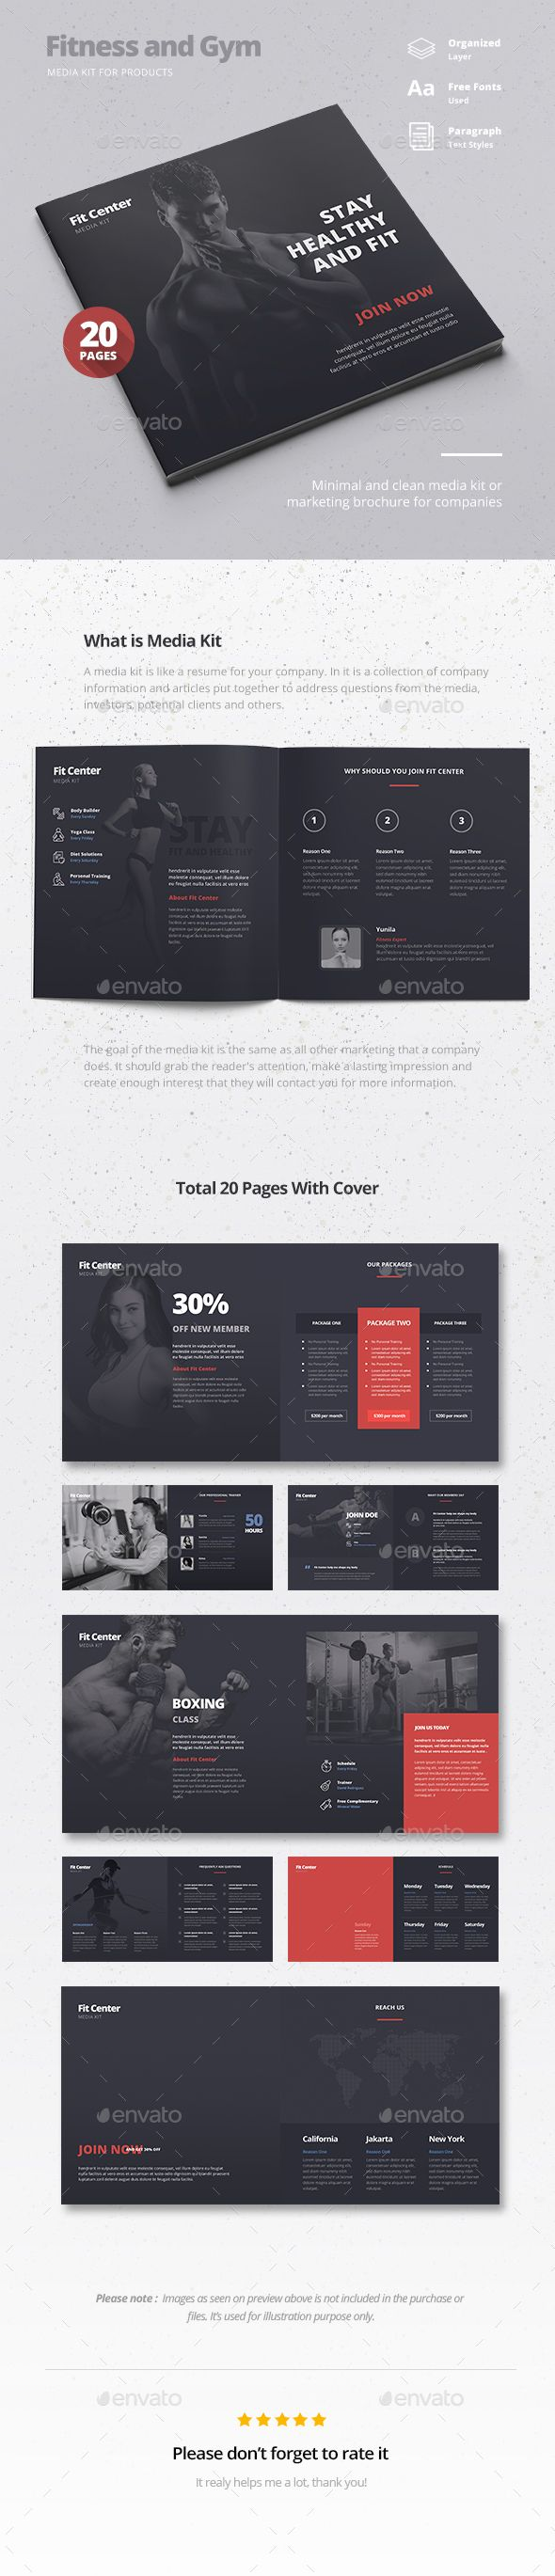 Fitness Gym Media Kit Brochure Template PSD #design Download: http://graphicriver.net/item/fitness-gym-media-kit-brochure/14294513?ref=ksioks